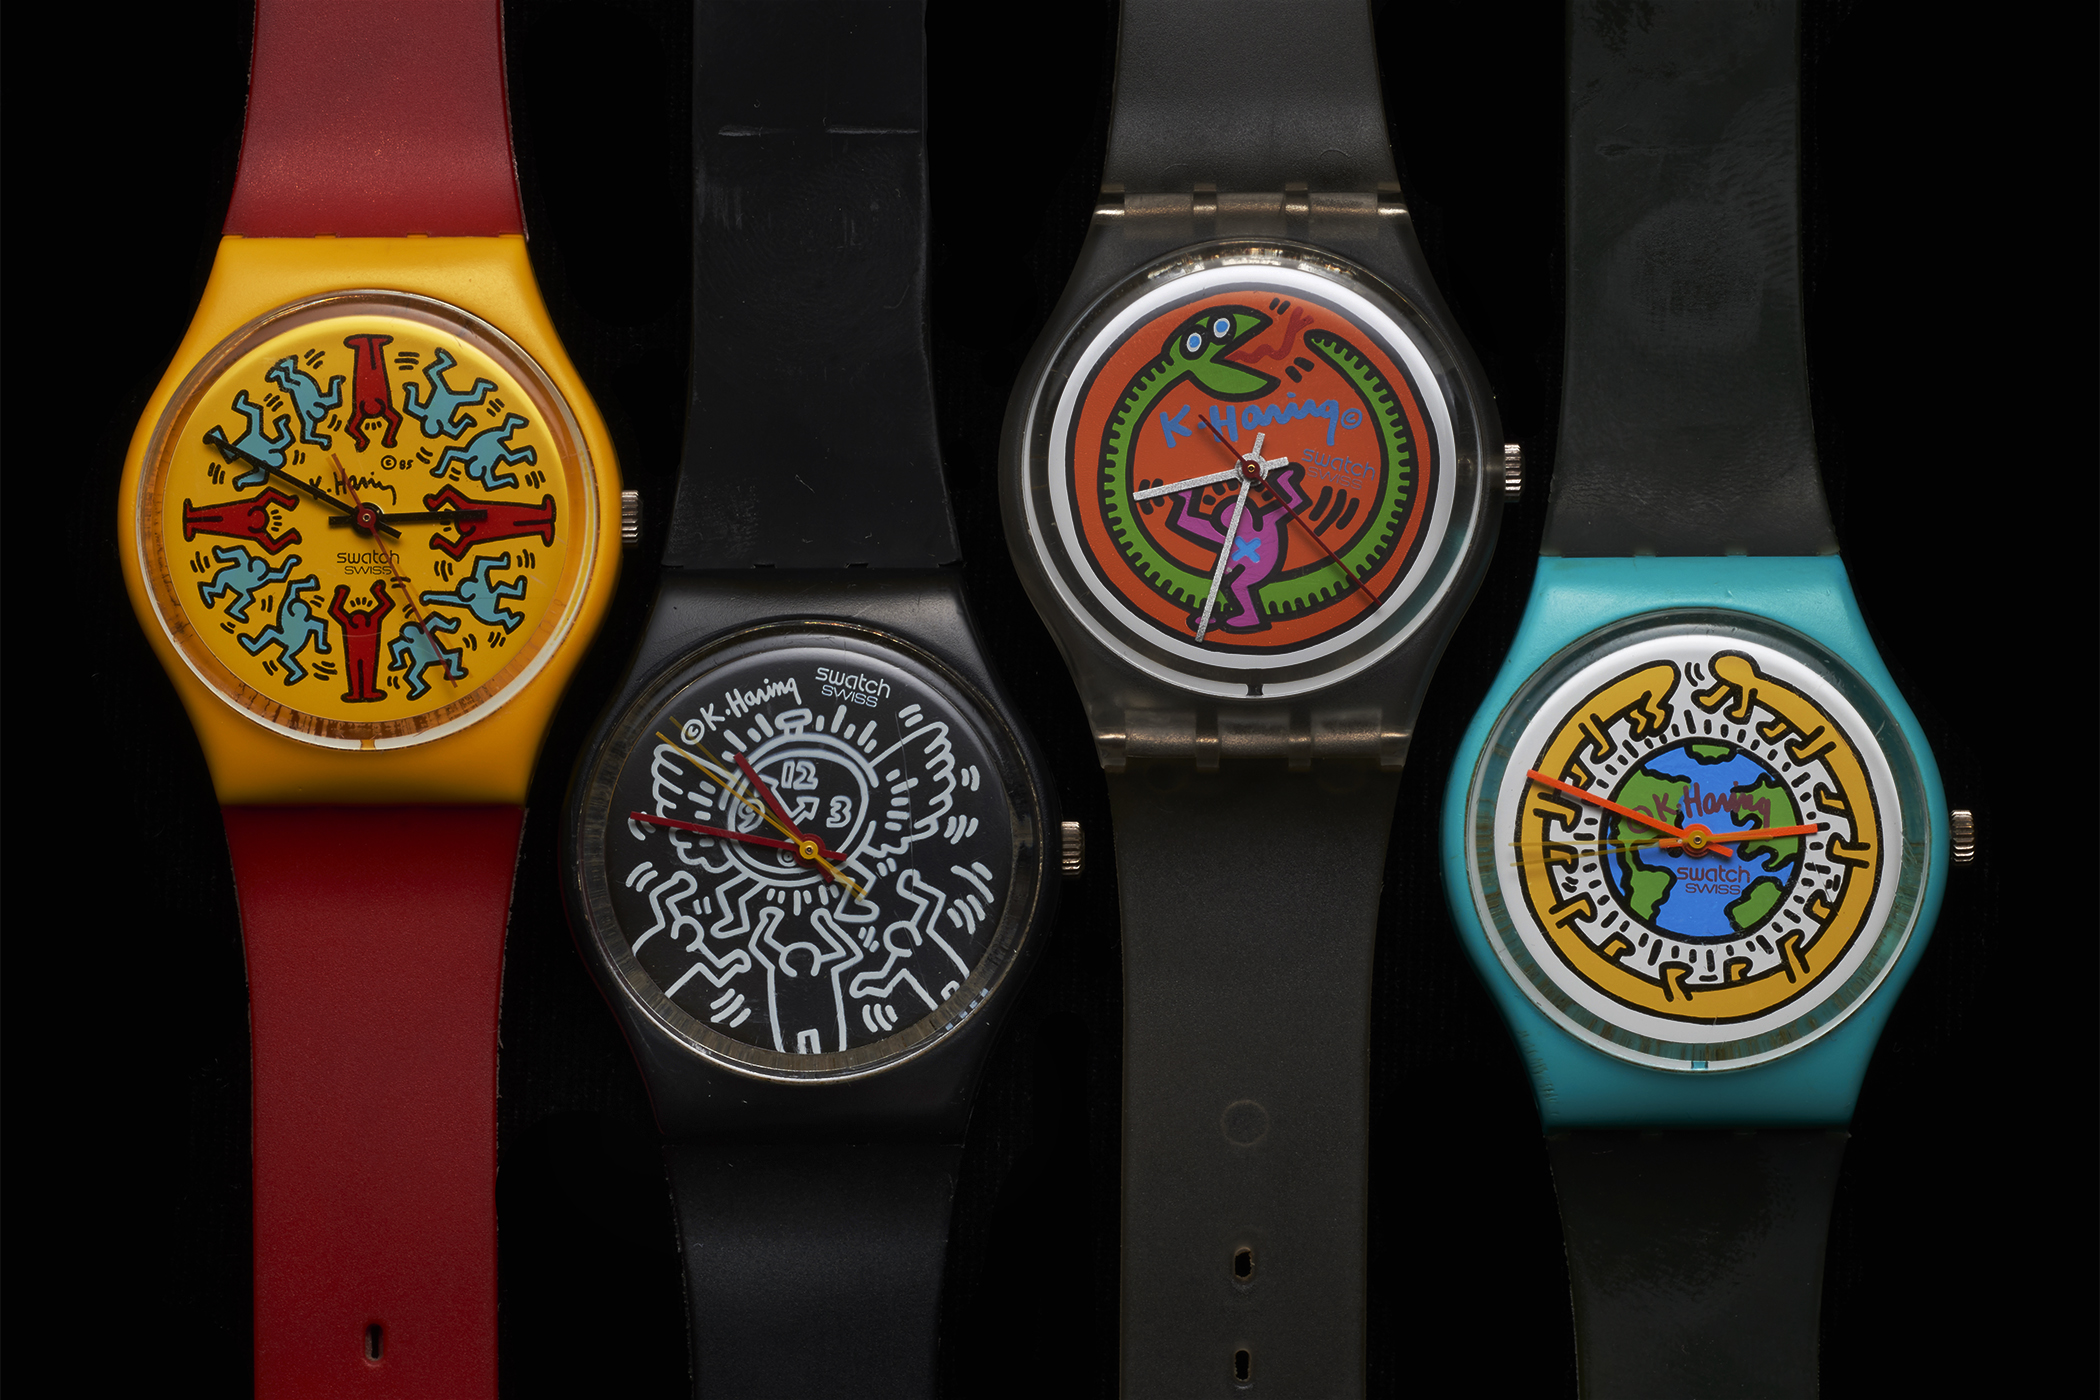 Atom Moore's Keith Haring Swatches